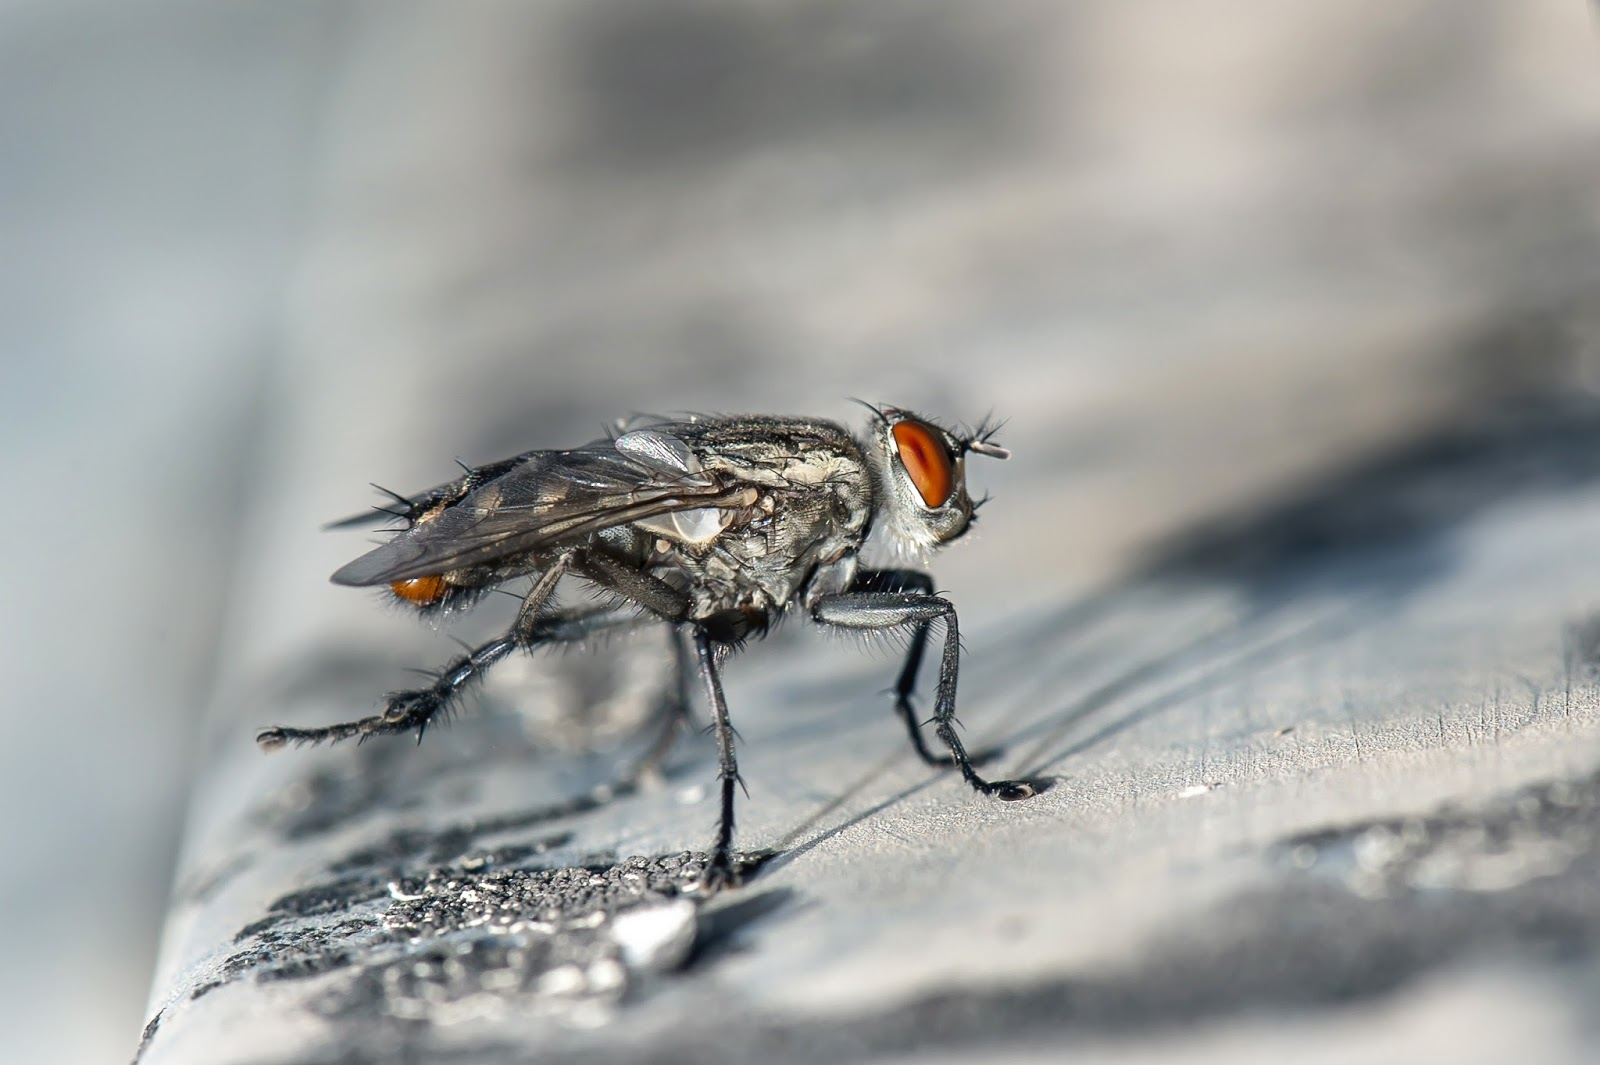 Picture of a housefly up-close.